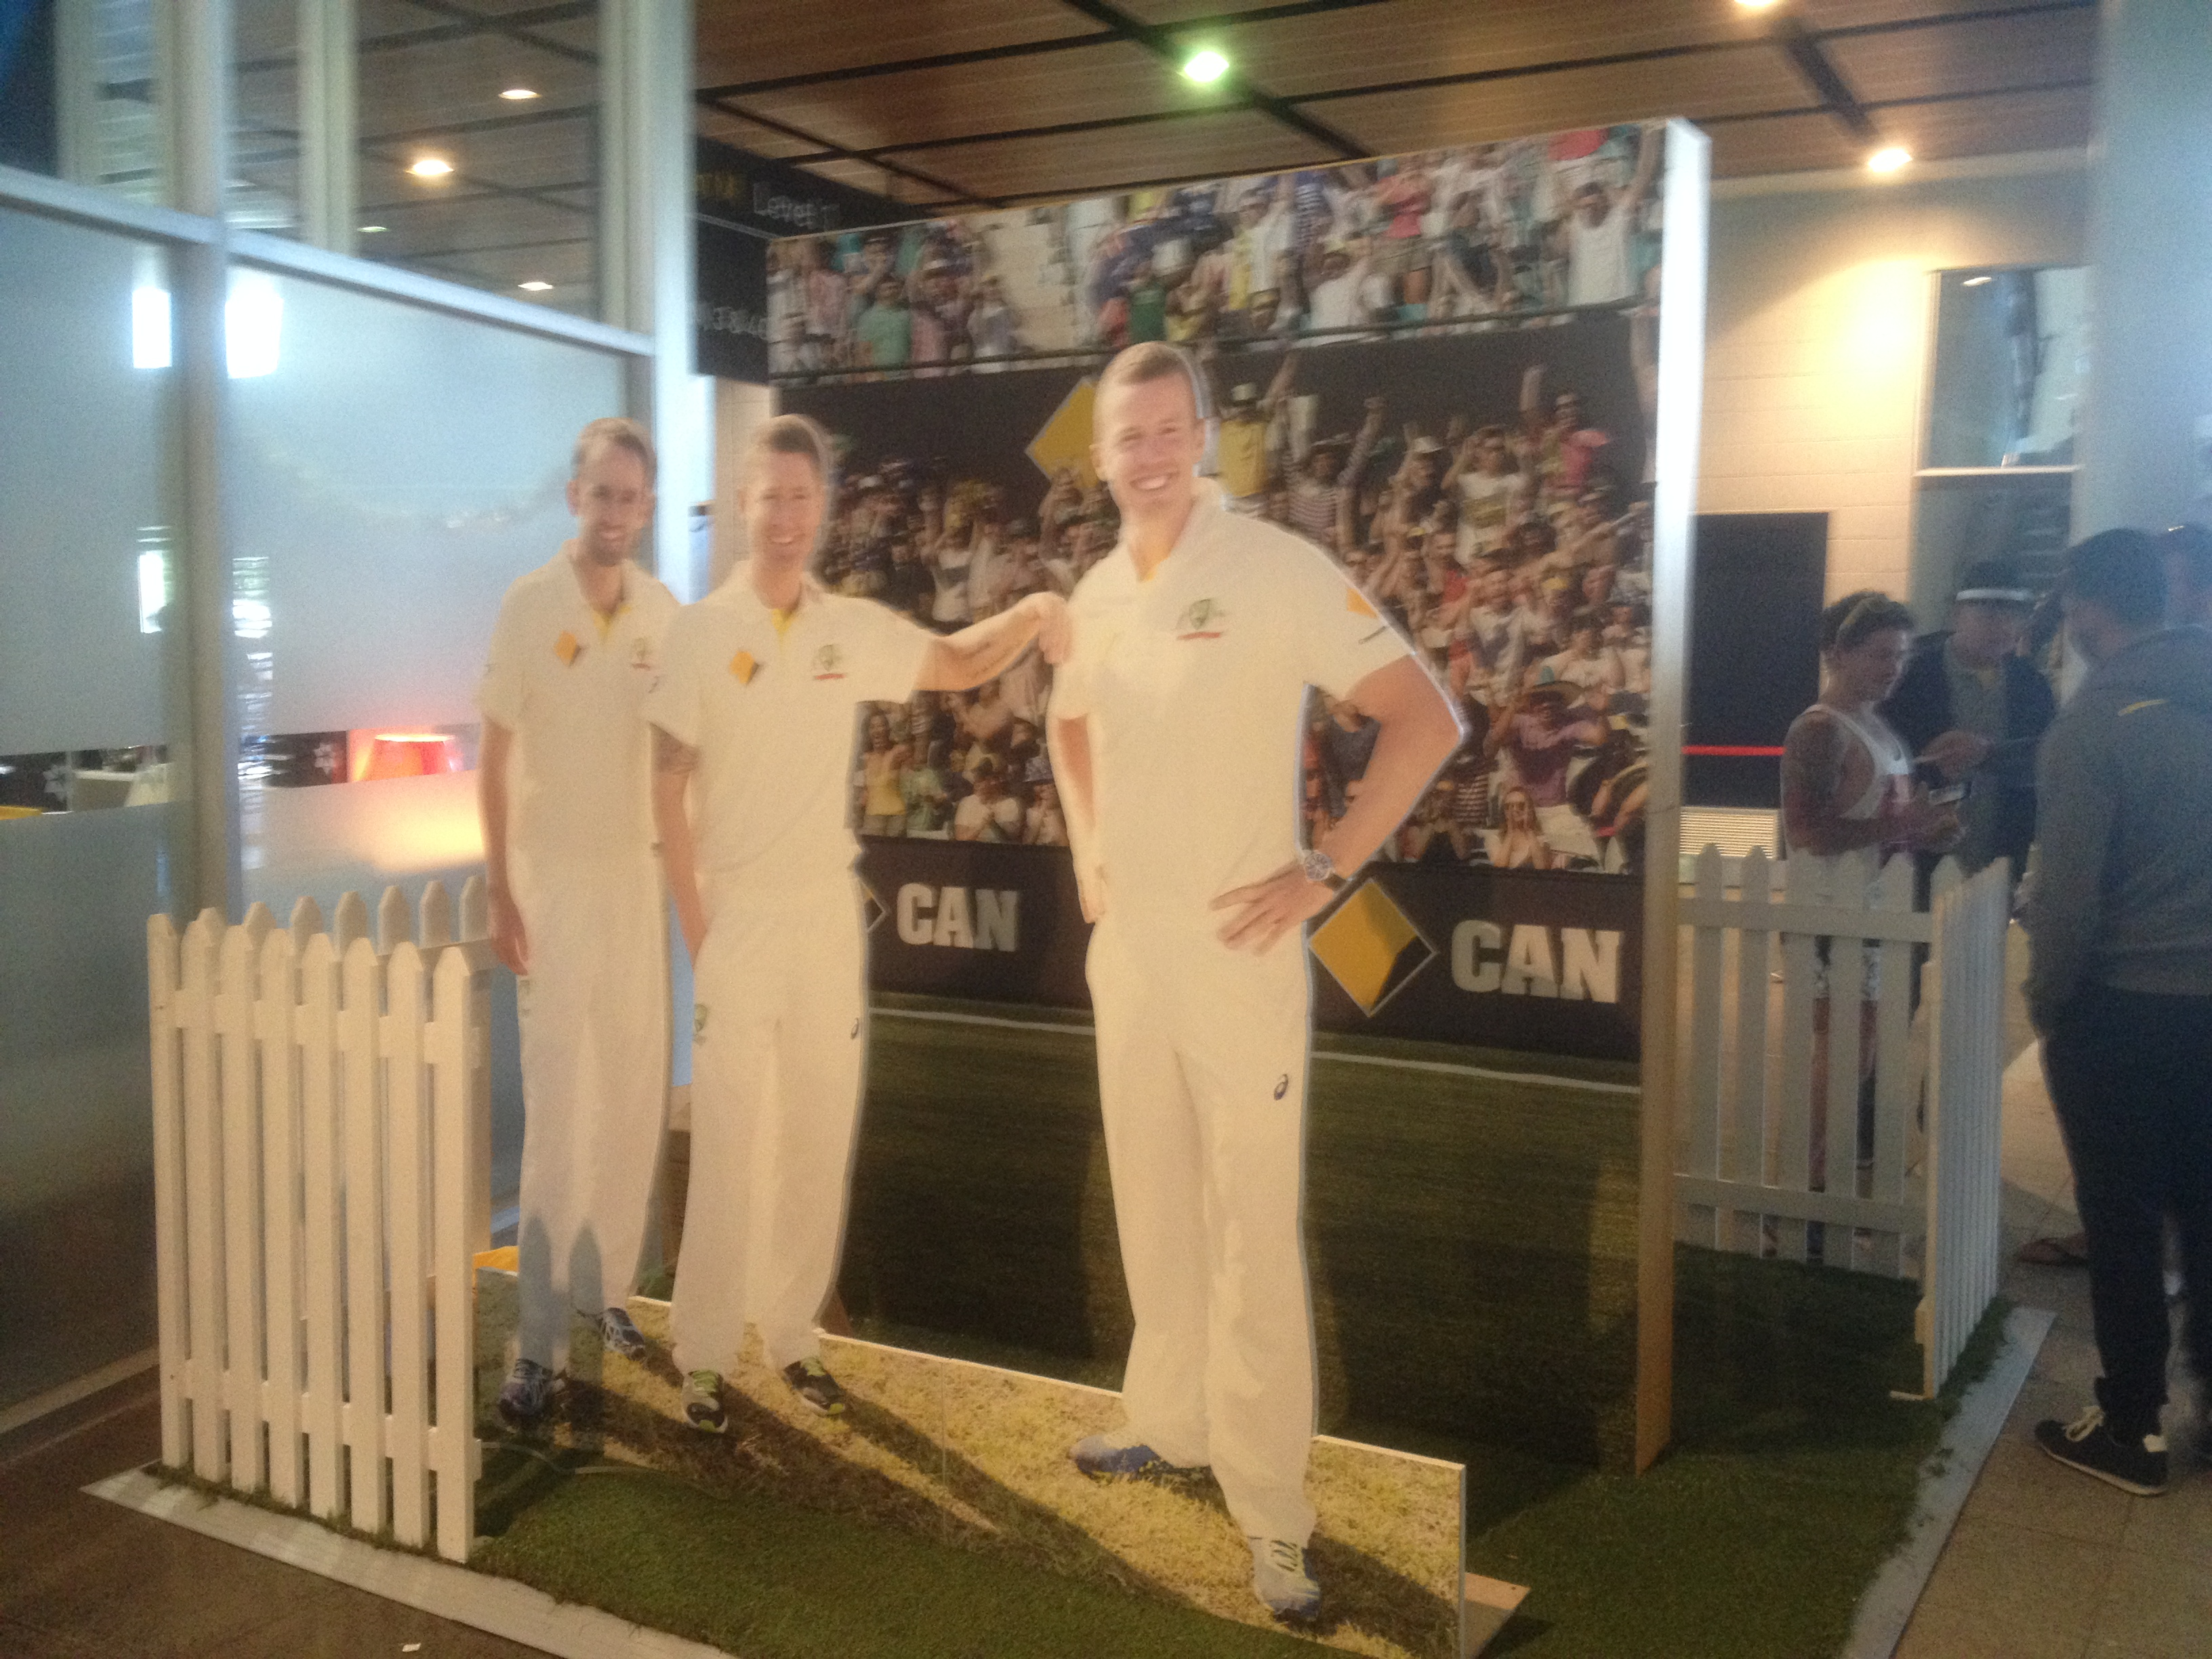 SCG photo opportunity for fans with the 'team'